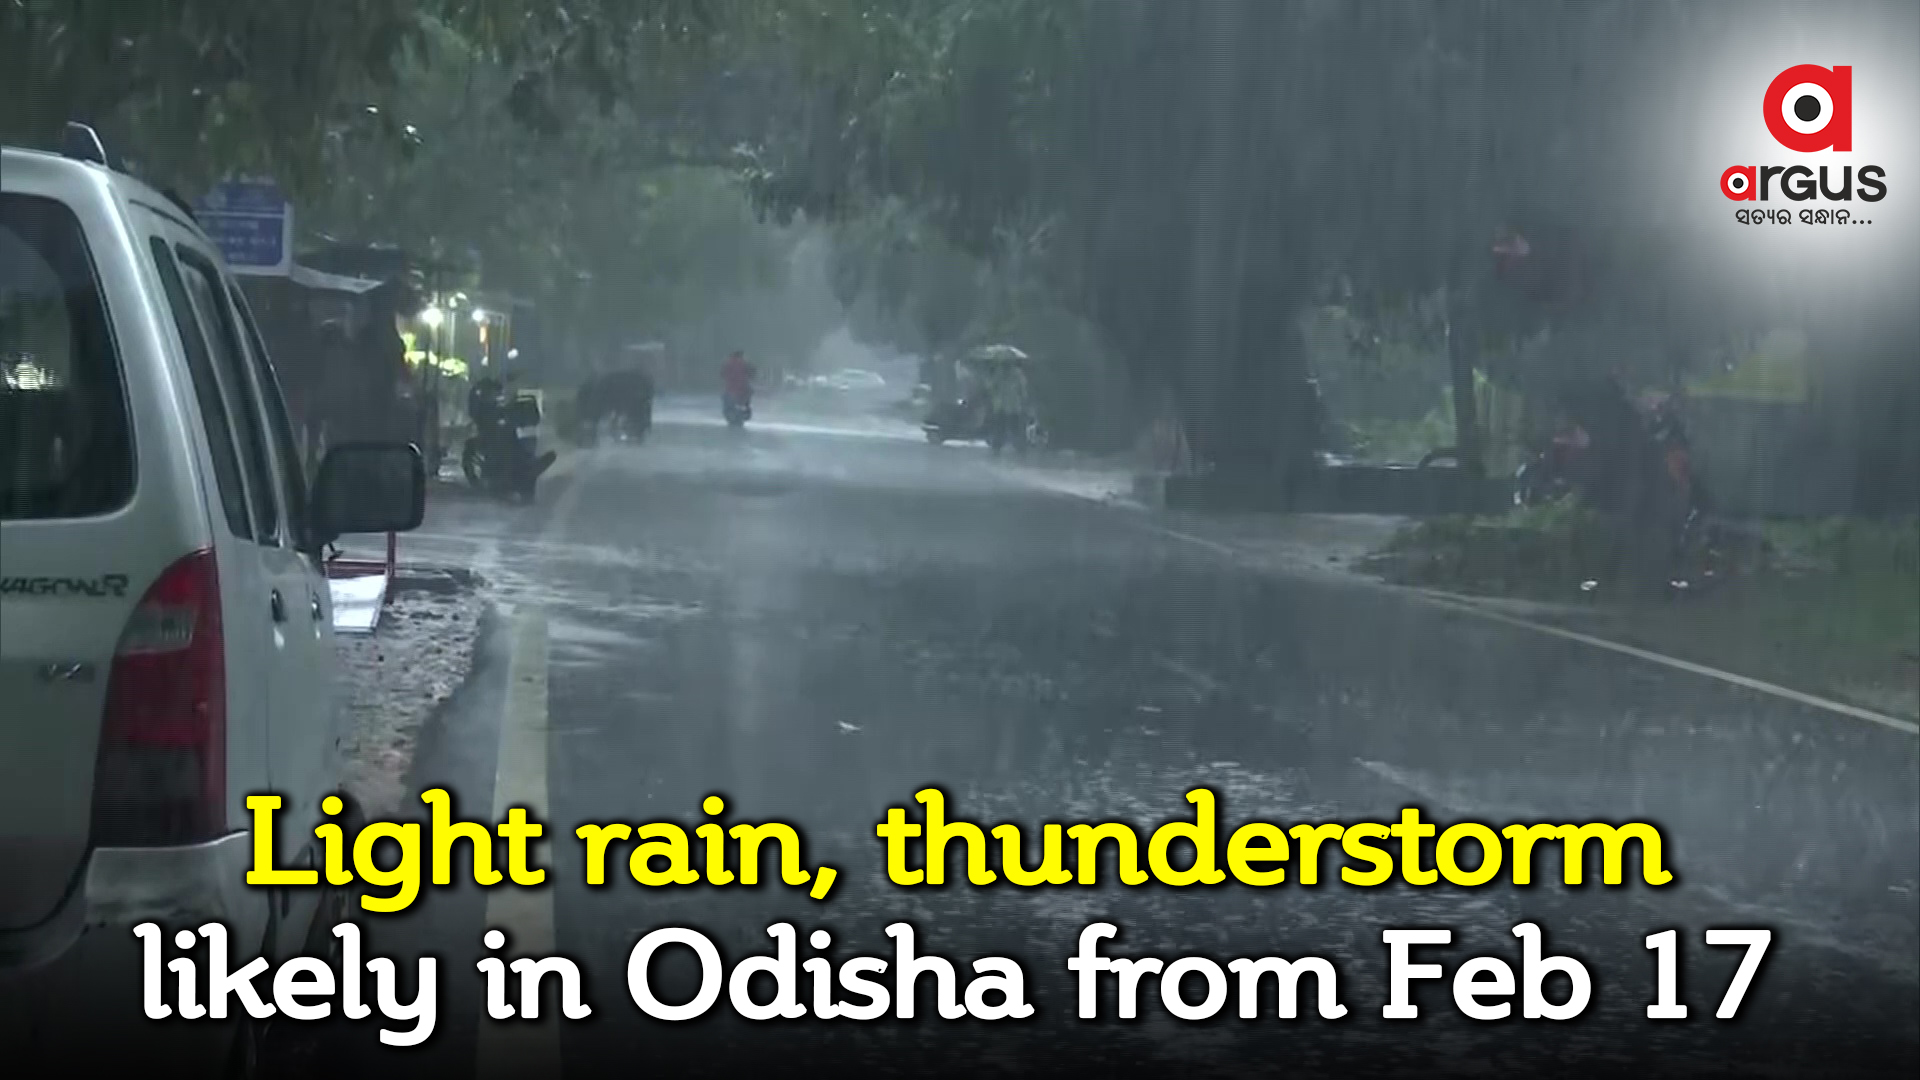 Light rain, thunderstorm likely in Odisha from Feb 17; Yellow warning issued